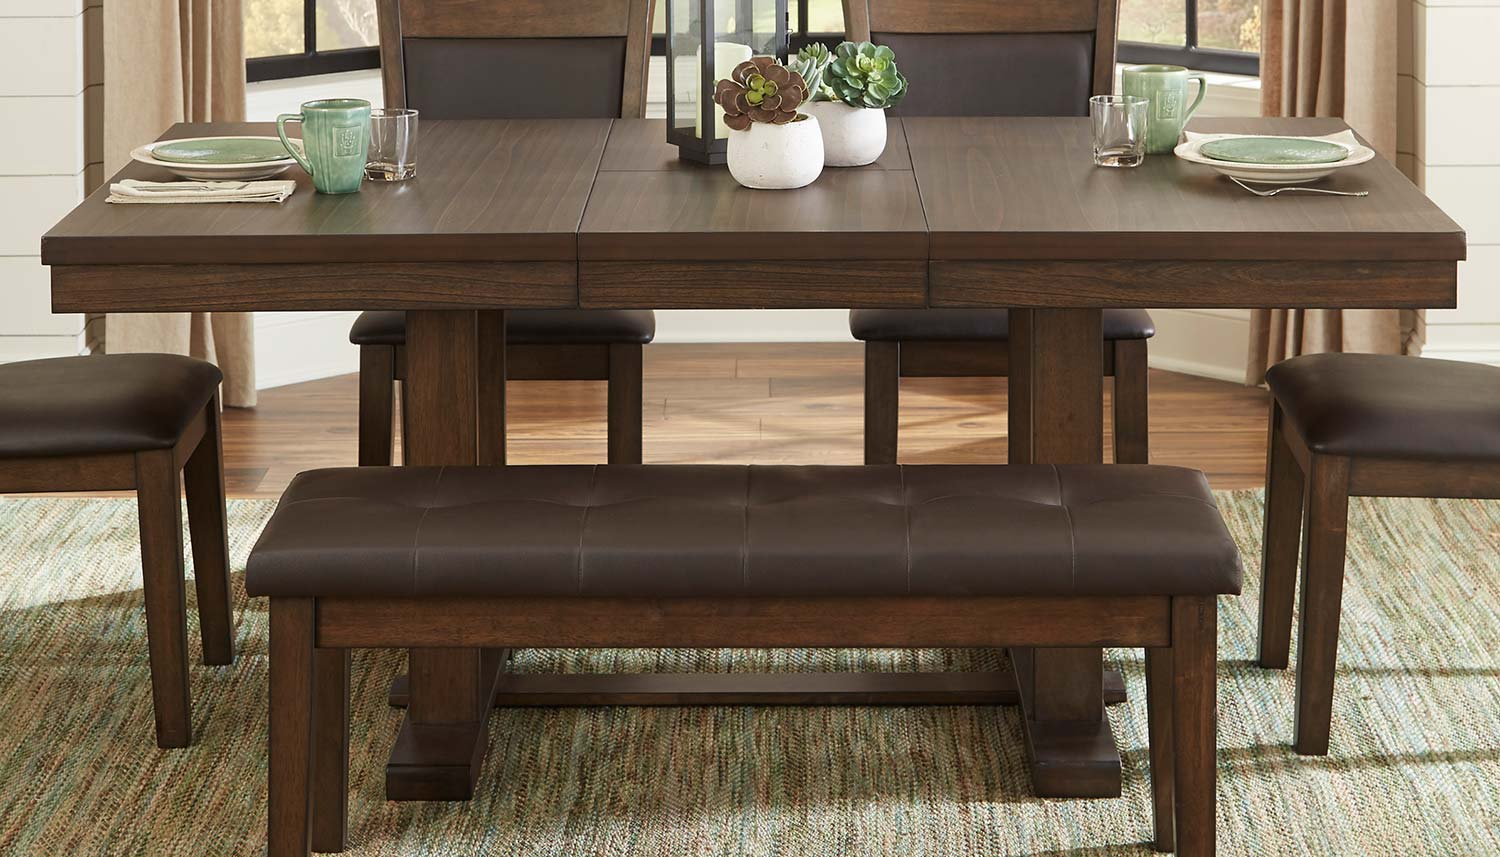 Homelegance Wieland Dining Table - Light Rustic Brown